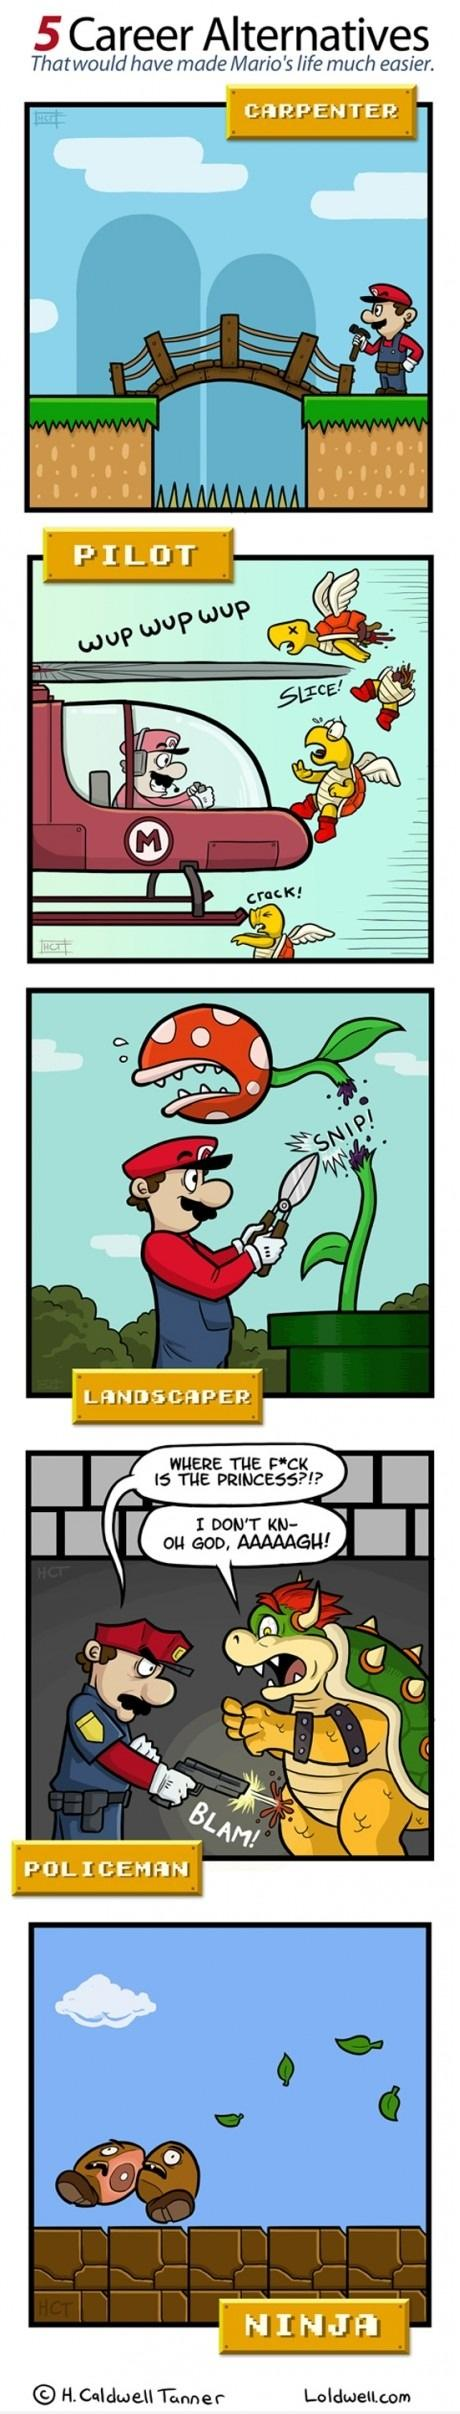 5 Career Alternatives for Mario | LOL Daily Fun